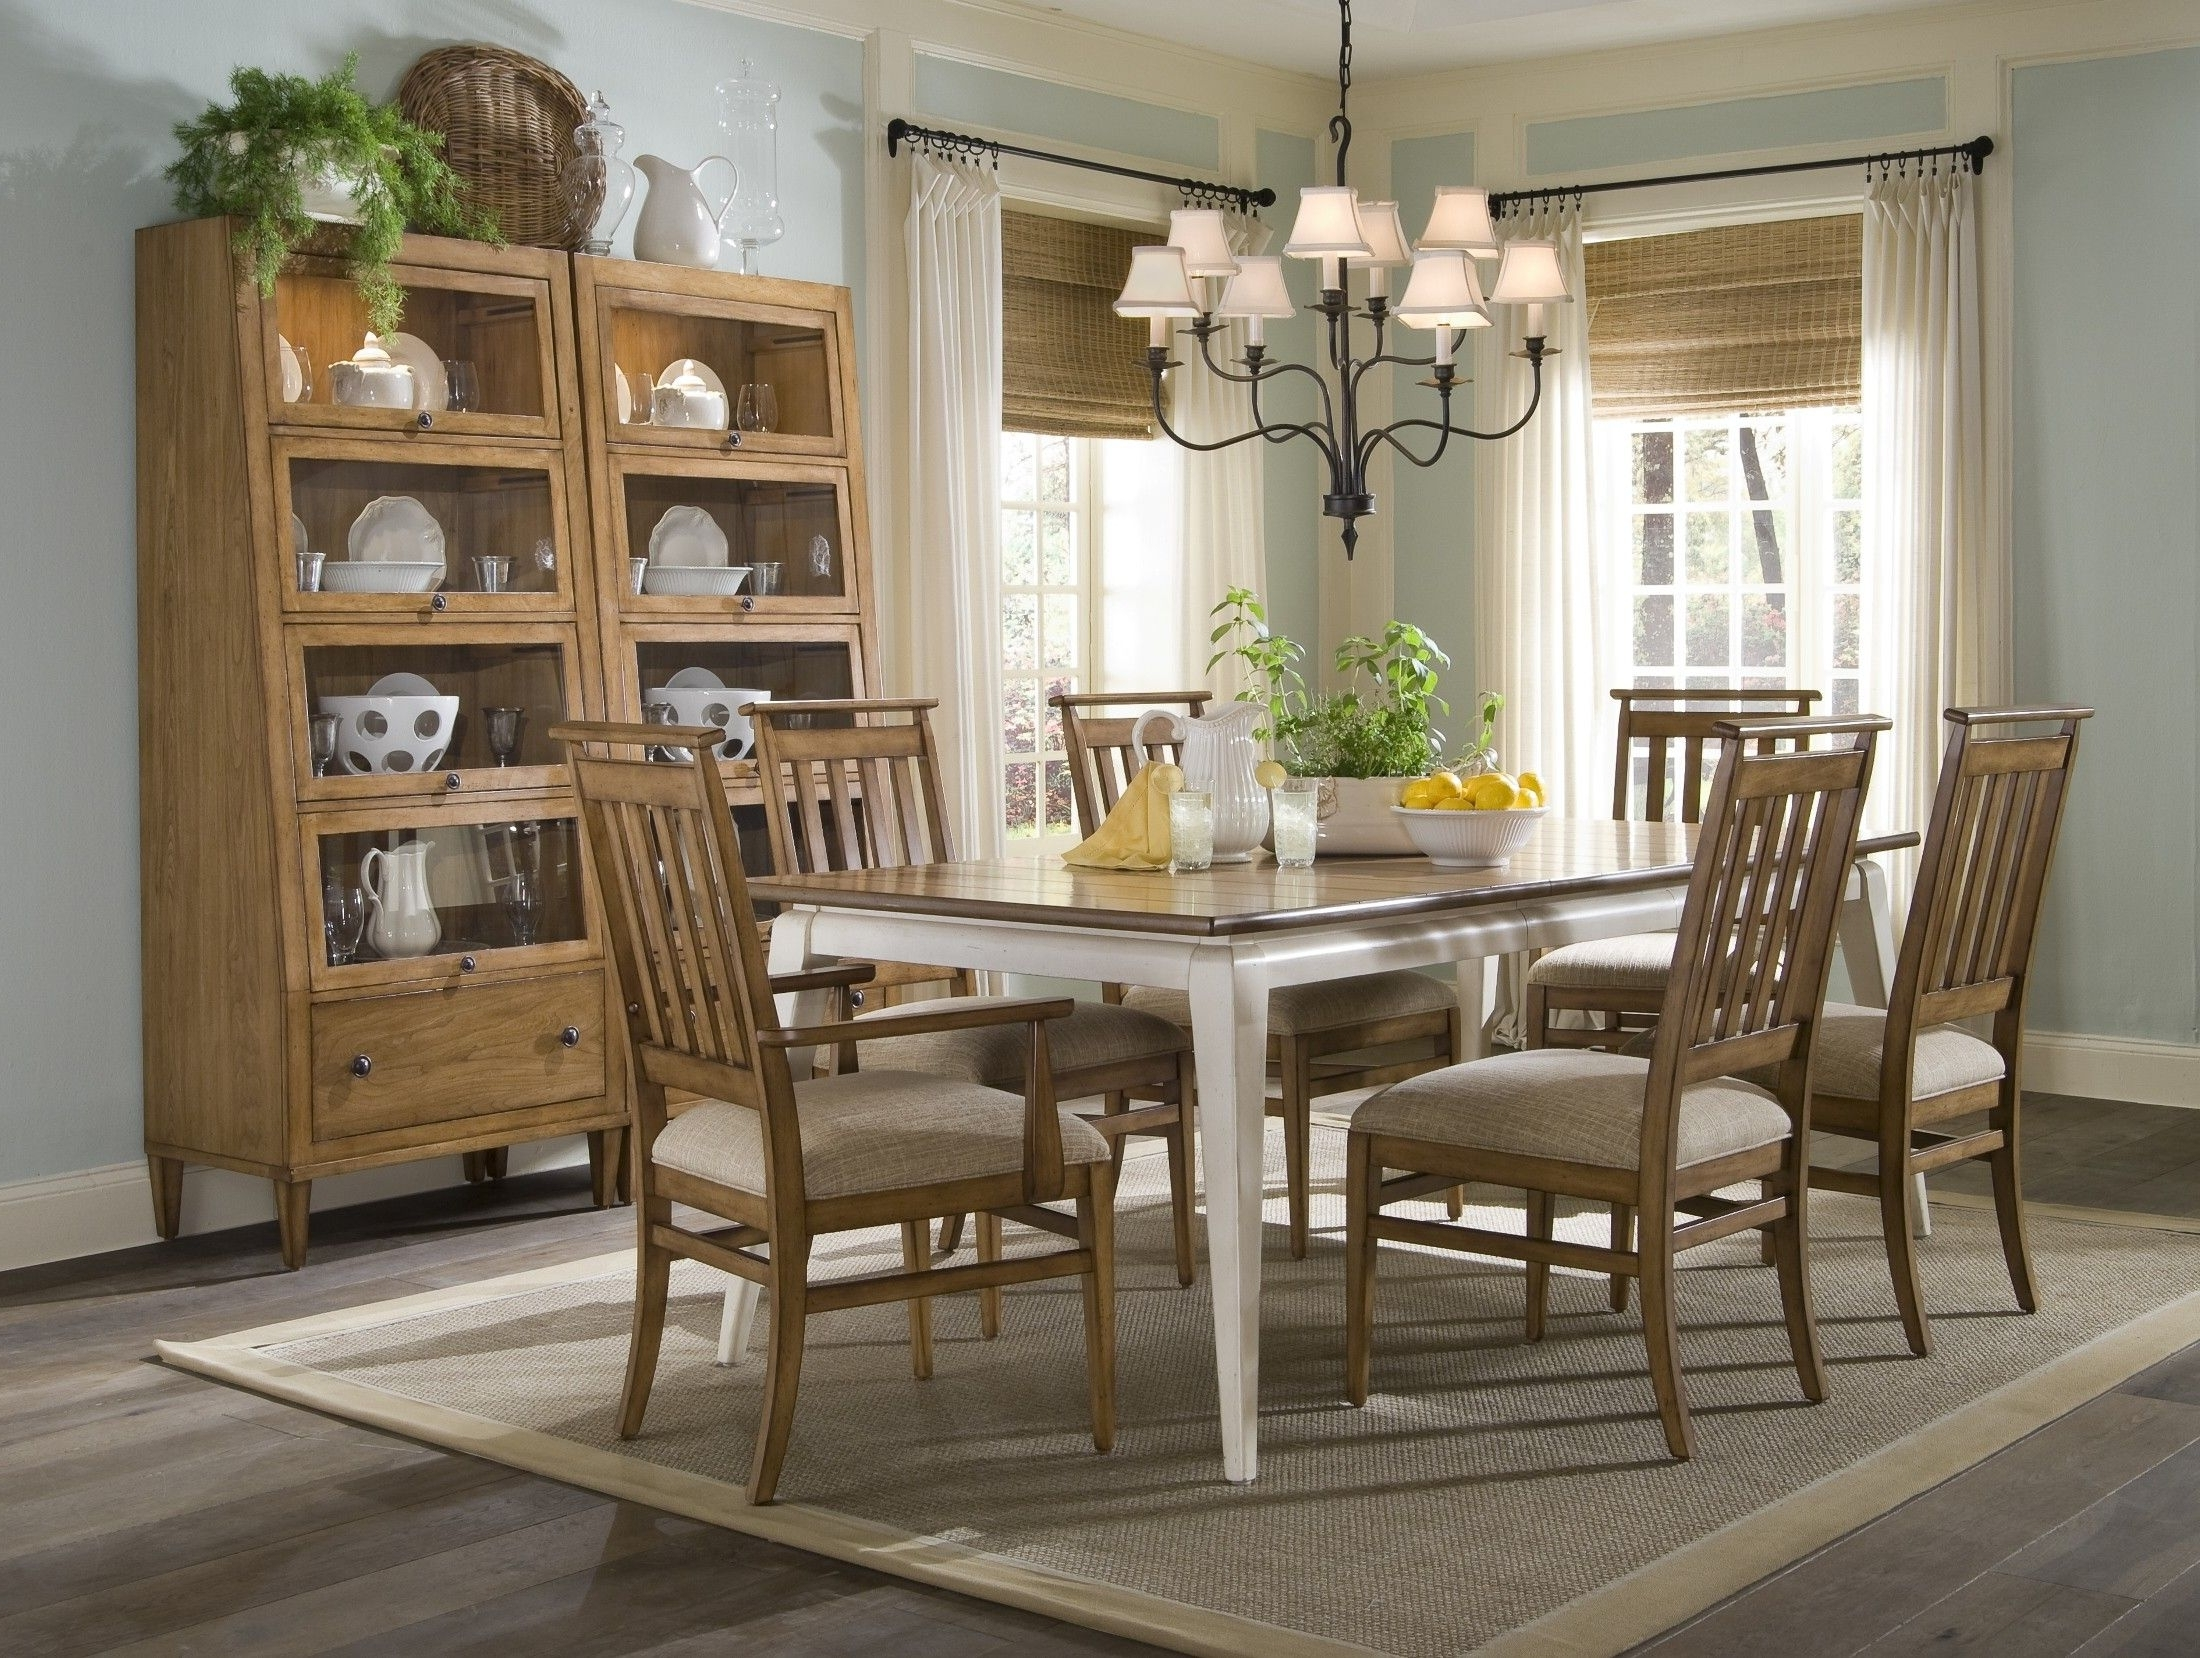 Popular Country Dining Room Furniture Inside Modern Design White Decorating With Norwood 7 Piece Rectangular Extension Dining Sets With Bench, Host & Side Chairs (Gallery 14 of 25)